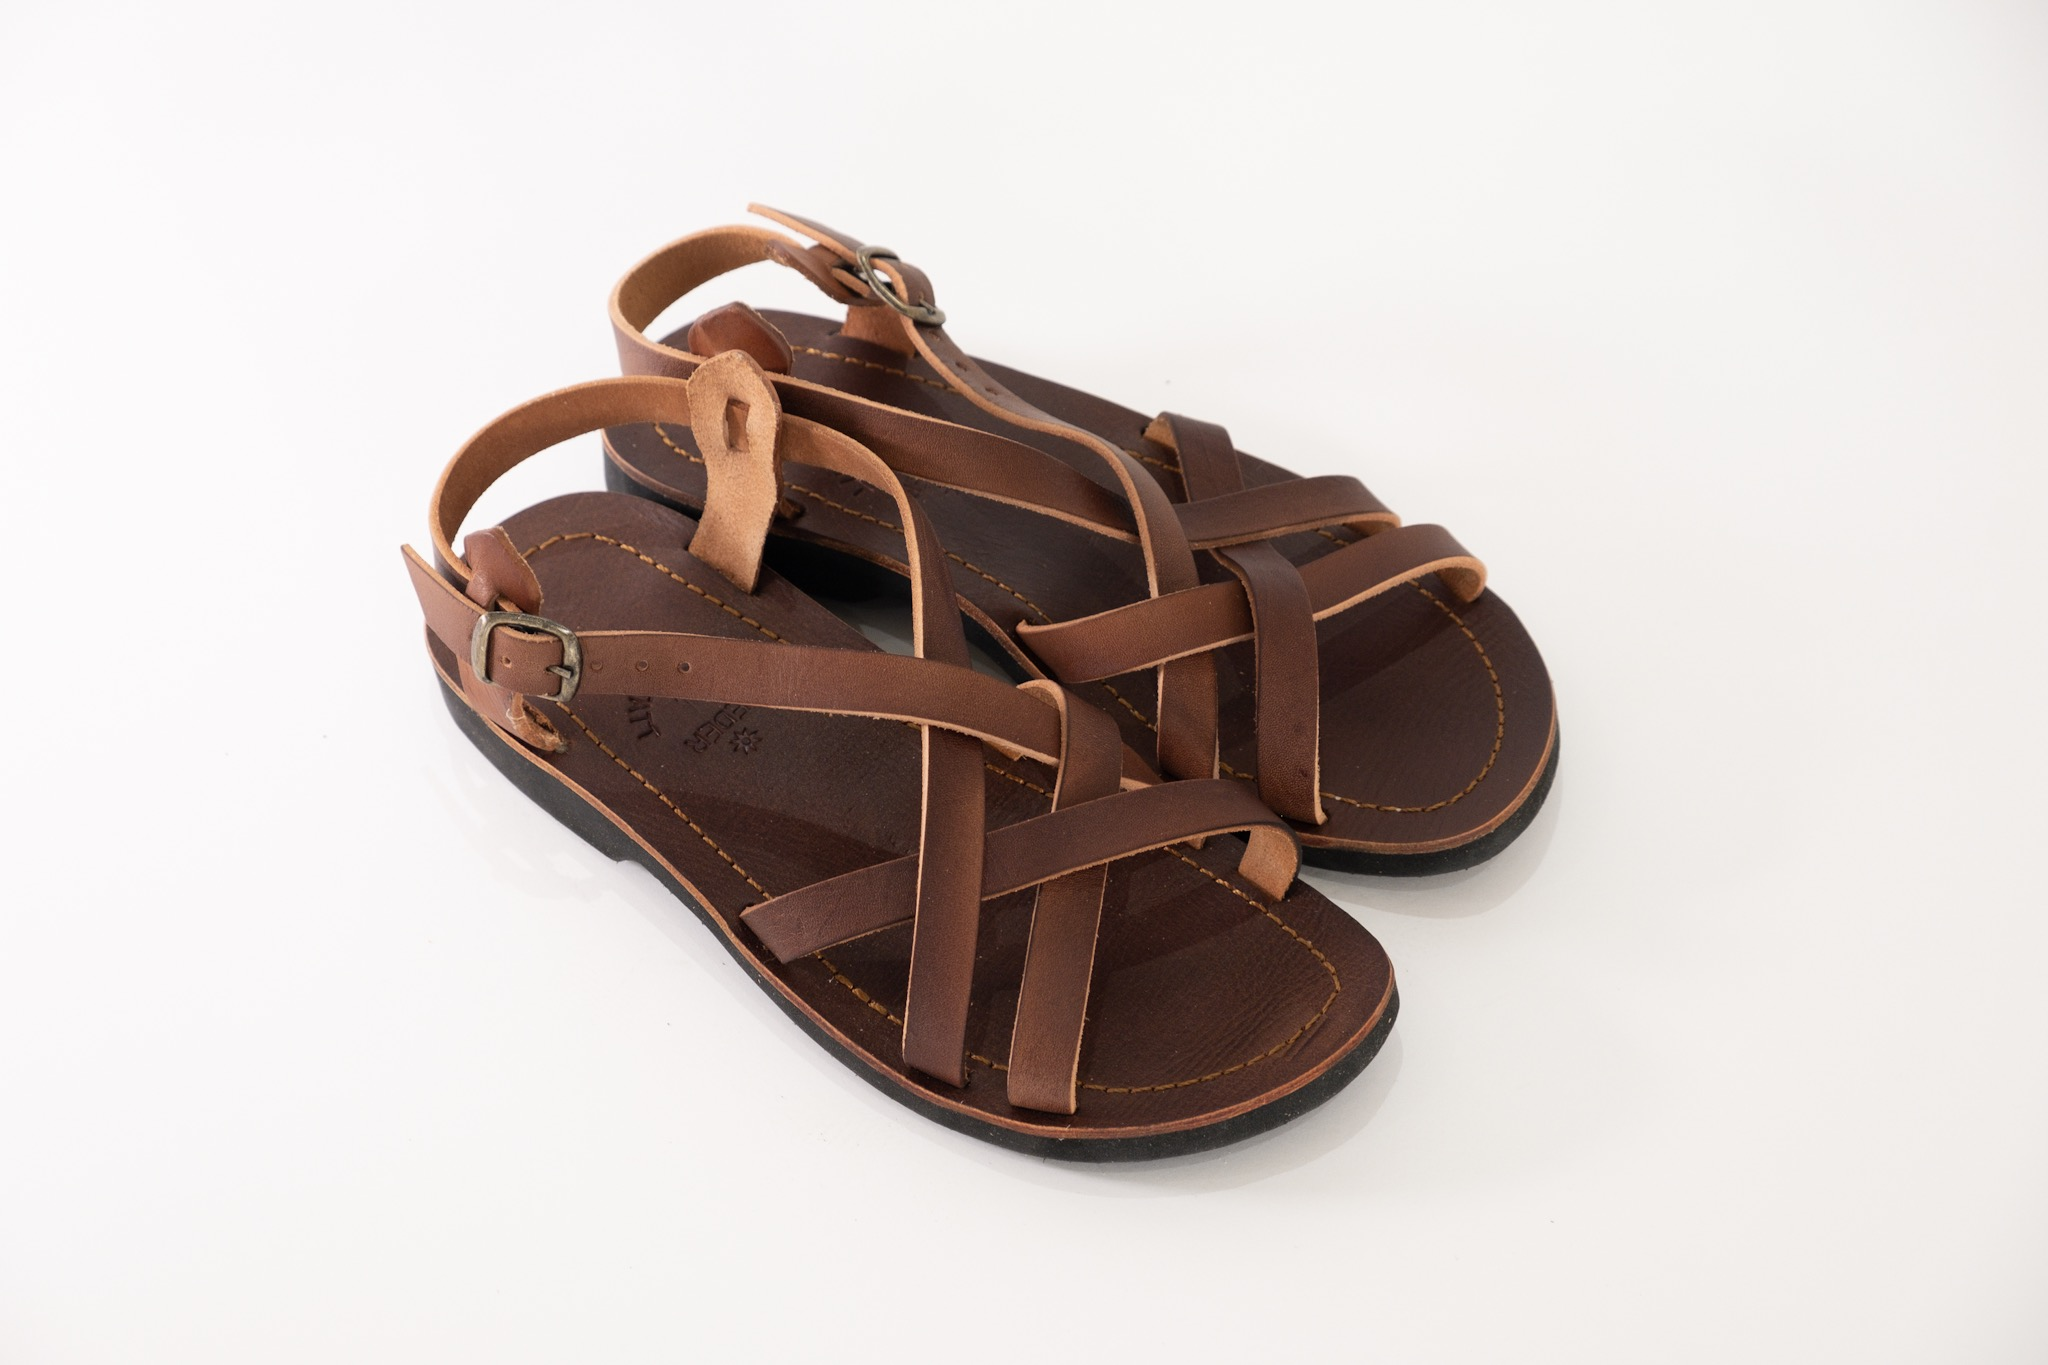 This classic woven strap sandal is unique, comfortable and durable. Whether you're walking all day, working all day, shopping all day, enjoying a morning or evening stroll, these are the shoes to add to your collection. Stylish in its simplicity allows this sandal to go with almost any outfit. The back strap keeps the foot secure, and the buckle can be used to adjust the size to suit the comfort of your feet.These sandals have veg tanned leather straps, a veg tanned leather insole, and a light weight EVA sole for comfort and cushioning.  There are two versions of this sandal – one where the straps go over the foot, theNala; and the other where an extra strap holds the big toe, theNala TS.  Happy strolling!  IMPORTANT: Before ordering, please consult the size chart and add your actual foot measurement to the comments section when ordering.Click to view size chart and foot measurements.  Find out more interesting facts about Bummel Shoes -read more...  FREE SA shipping of orders over R1000.